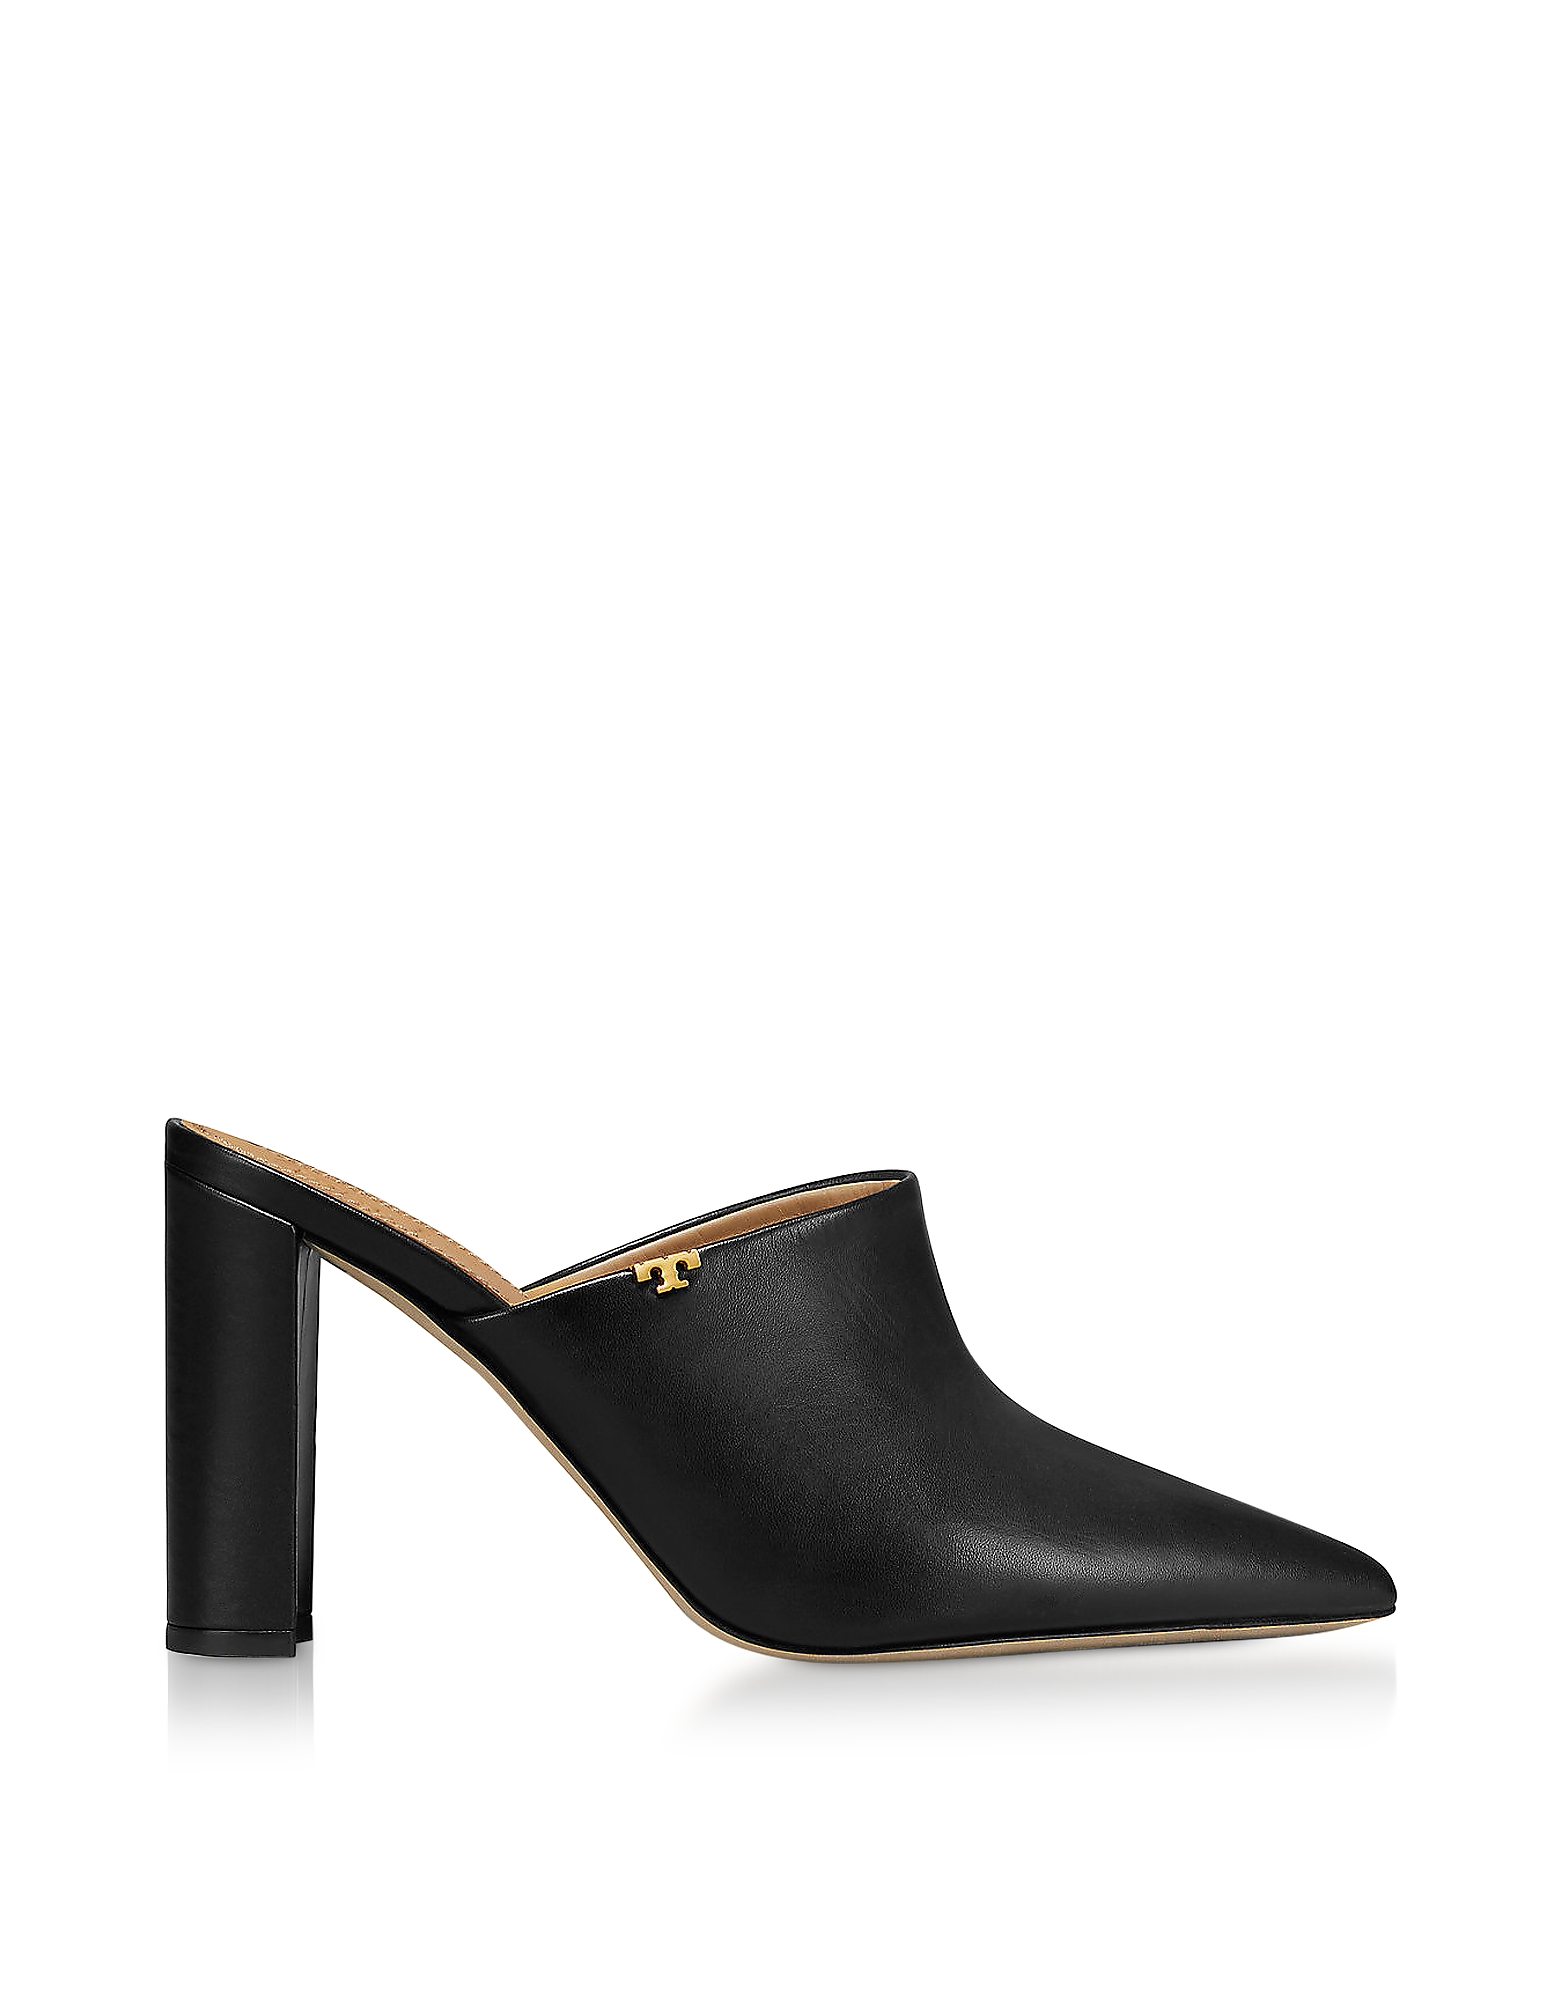 Tory Burch Shoes, Perfect Black Penelope 90mm Mules